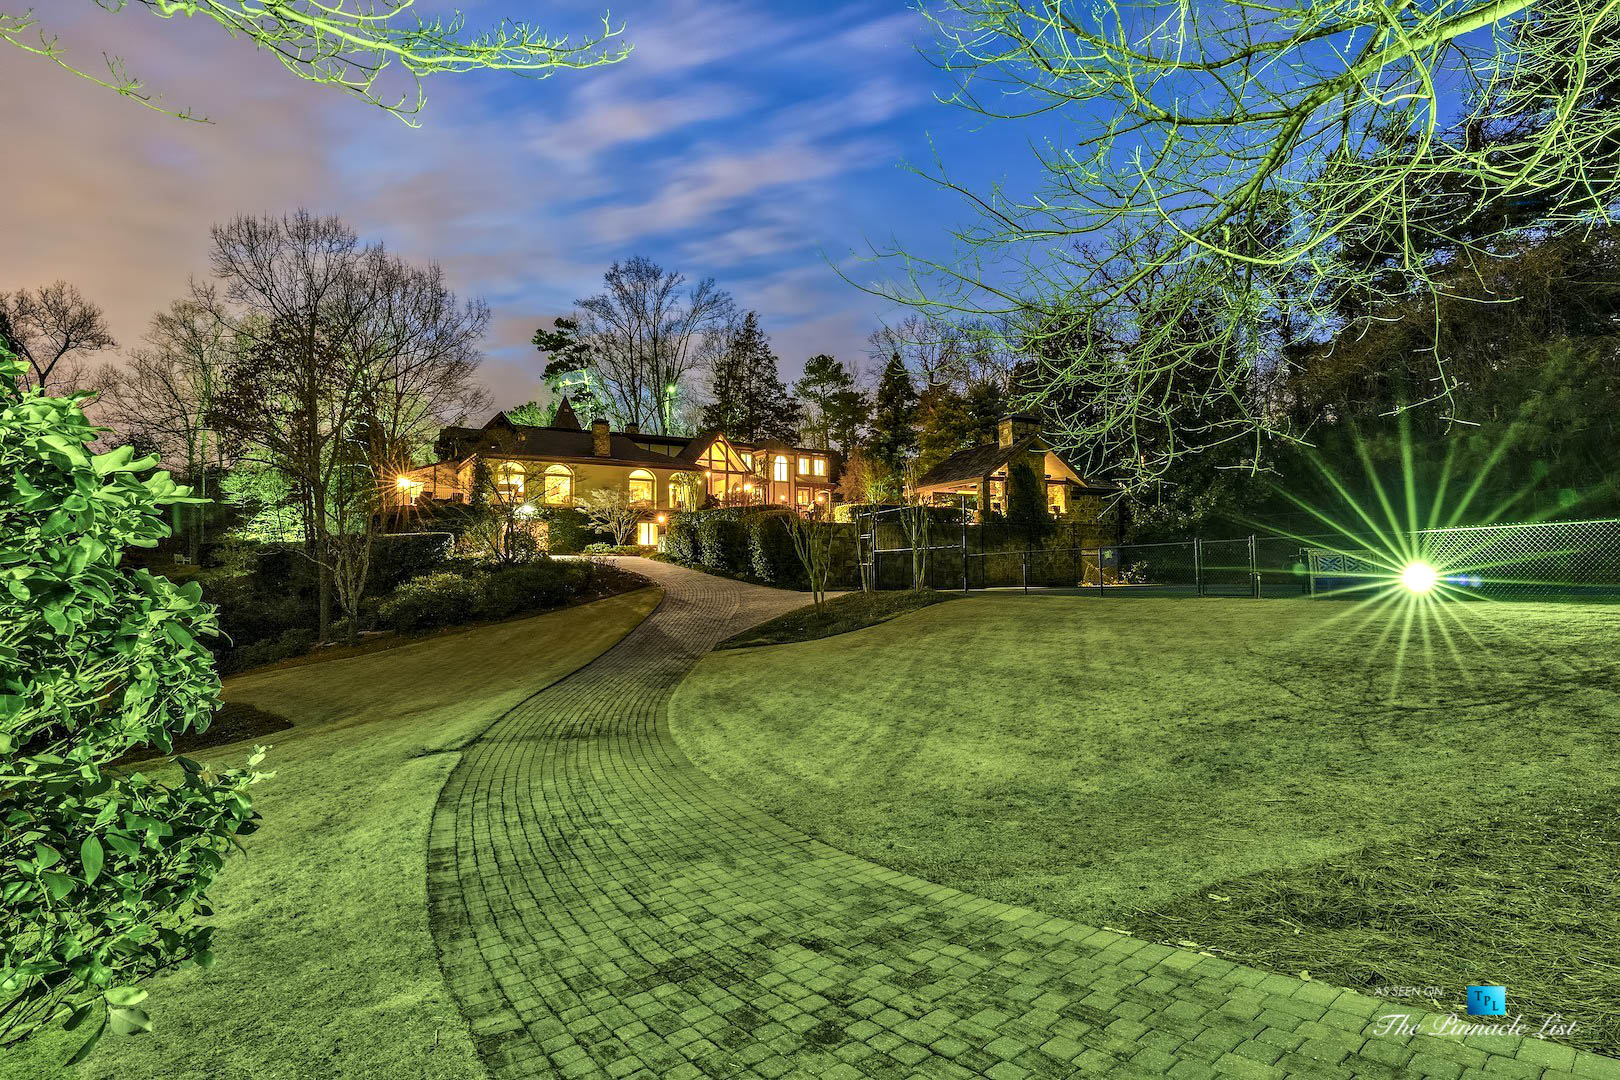 75 Finch Forest Trail, Atlanta, GA, USA - Night Yard Property View - Luxury Real Estate - Sandy Springs Home